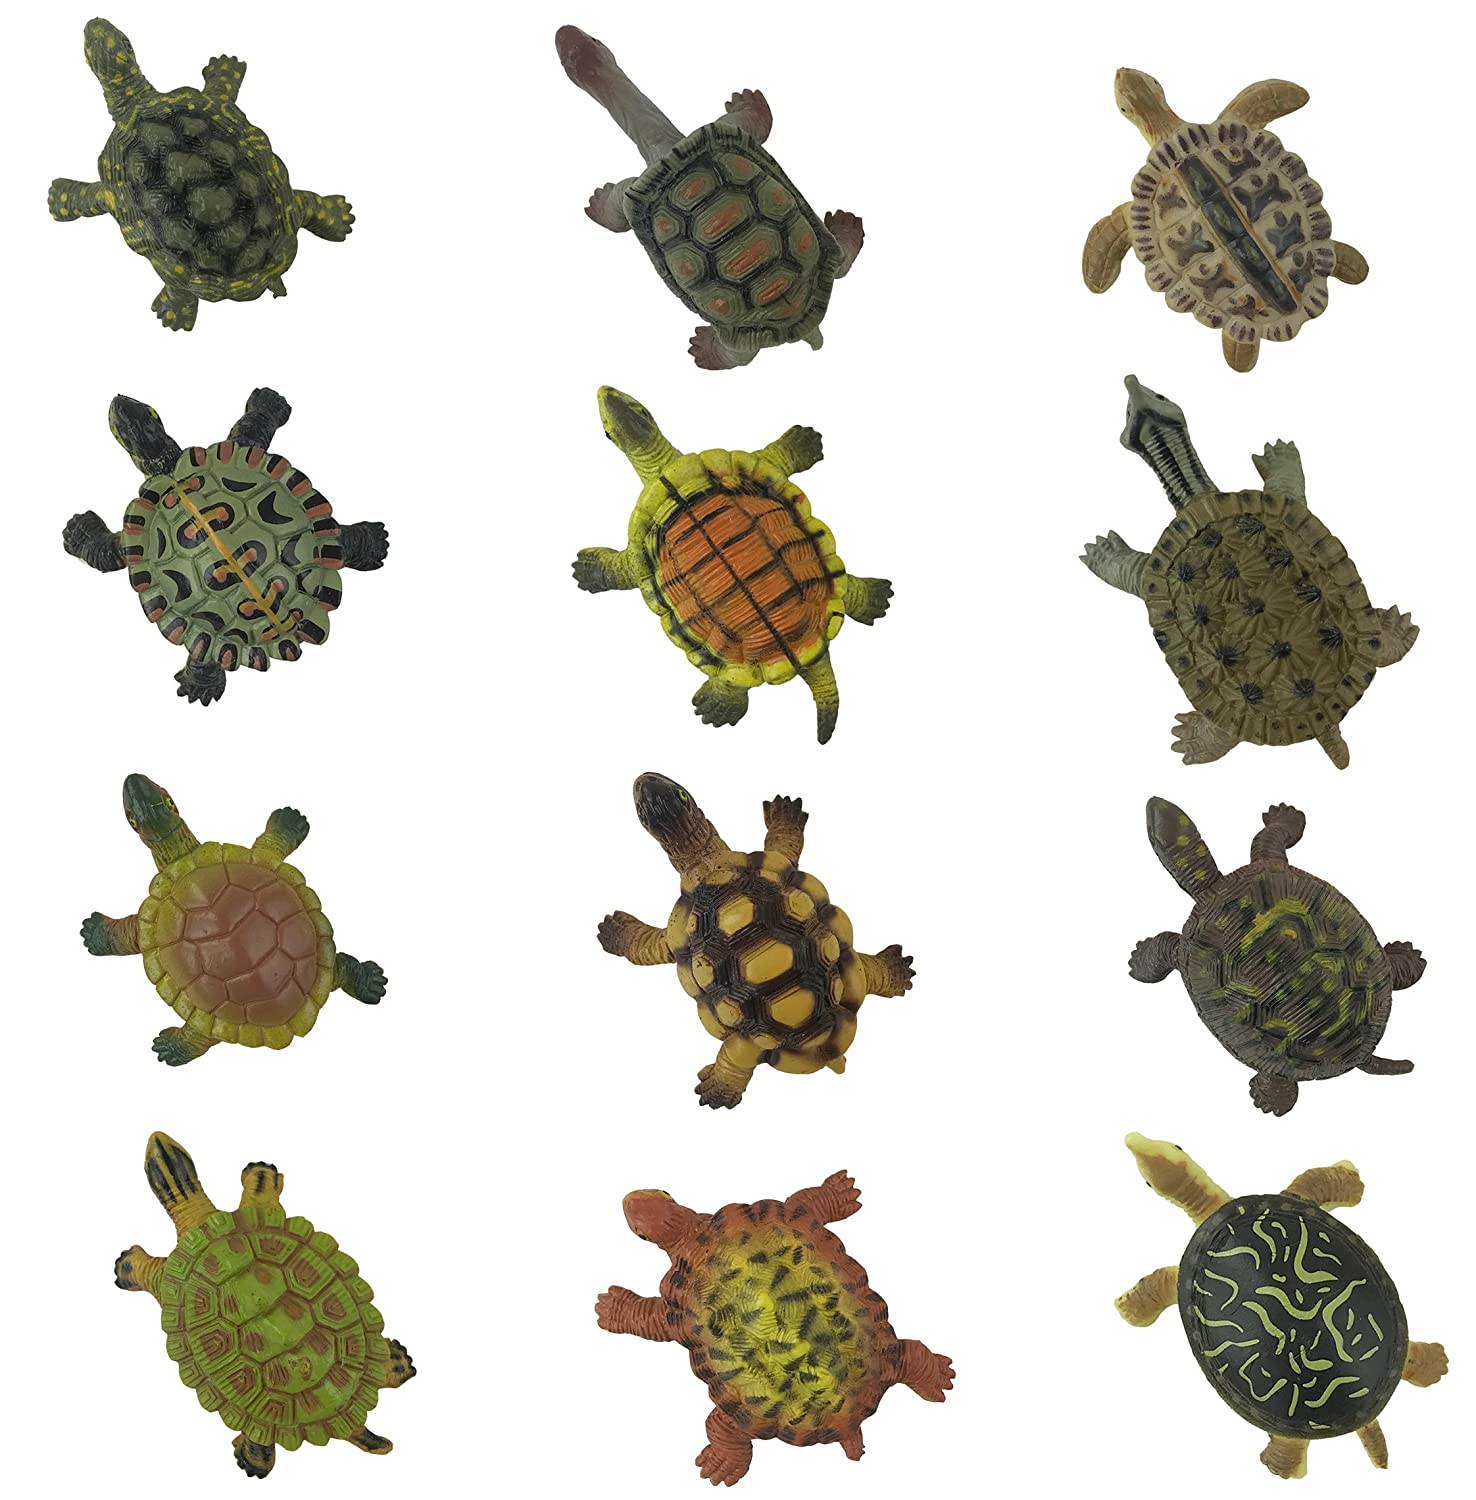 Realistic Sea Turtle Miniature Figurines - 12 Unique Turtles Detailed and Hand Painted Reptile Toys for Kids Liberty Imports